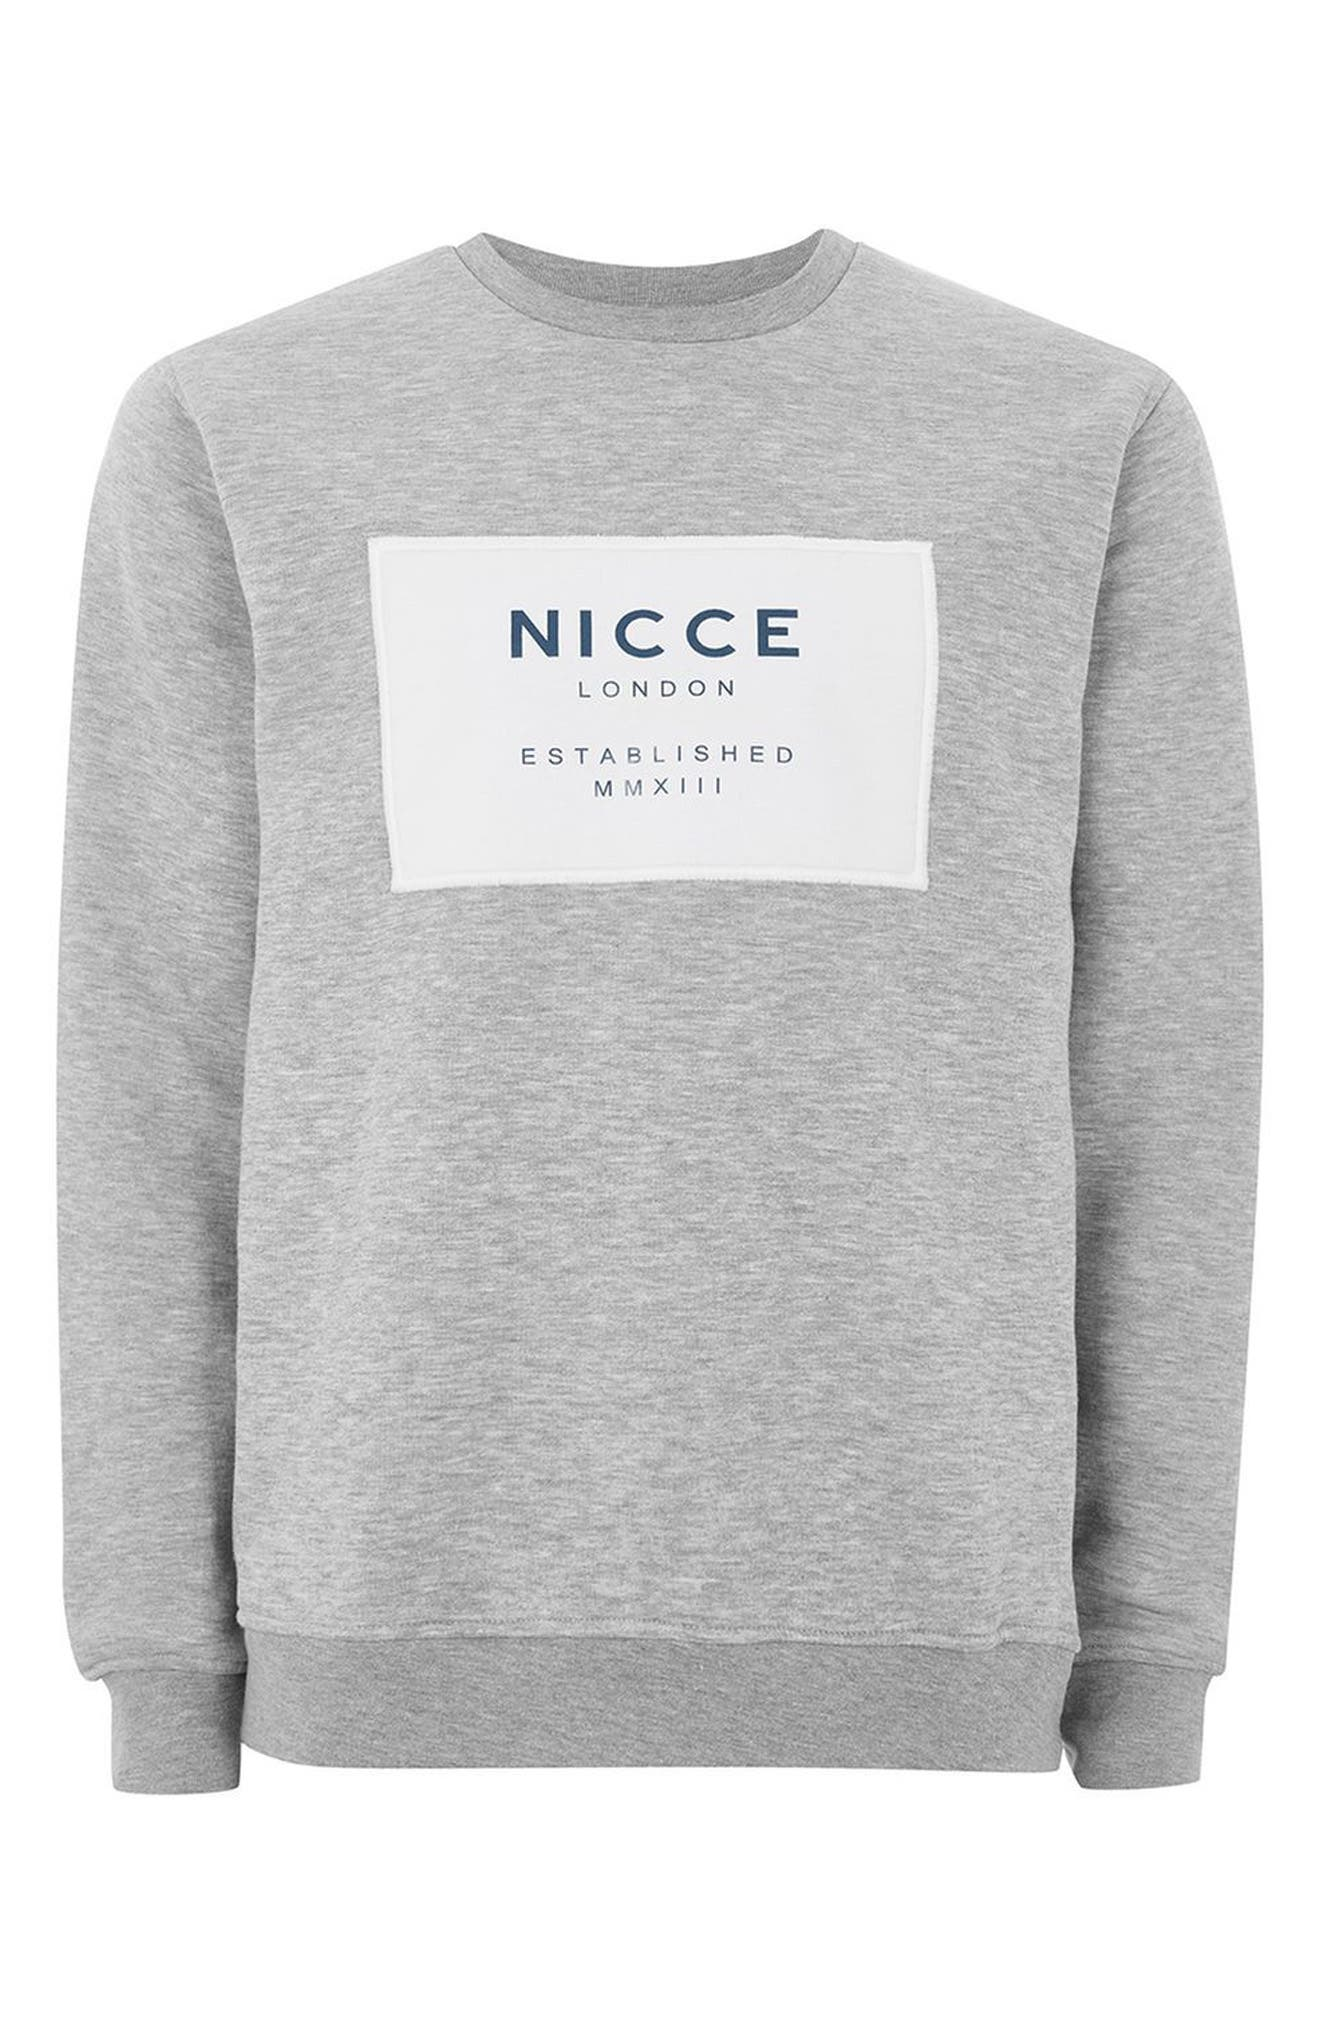 NICCE Logo Patch Sweatshirt,                             Alternate thumbnail 4, color,                             Grey Multi